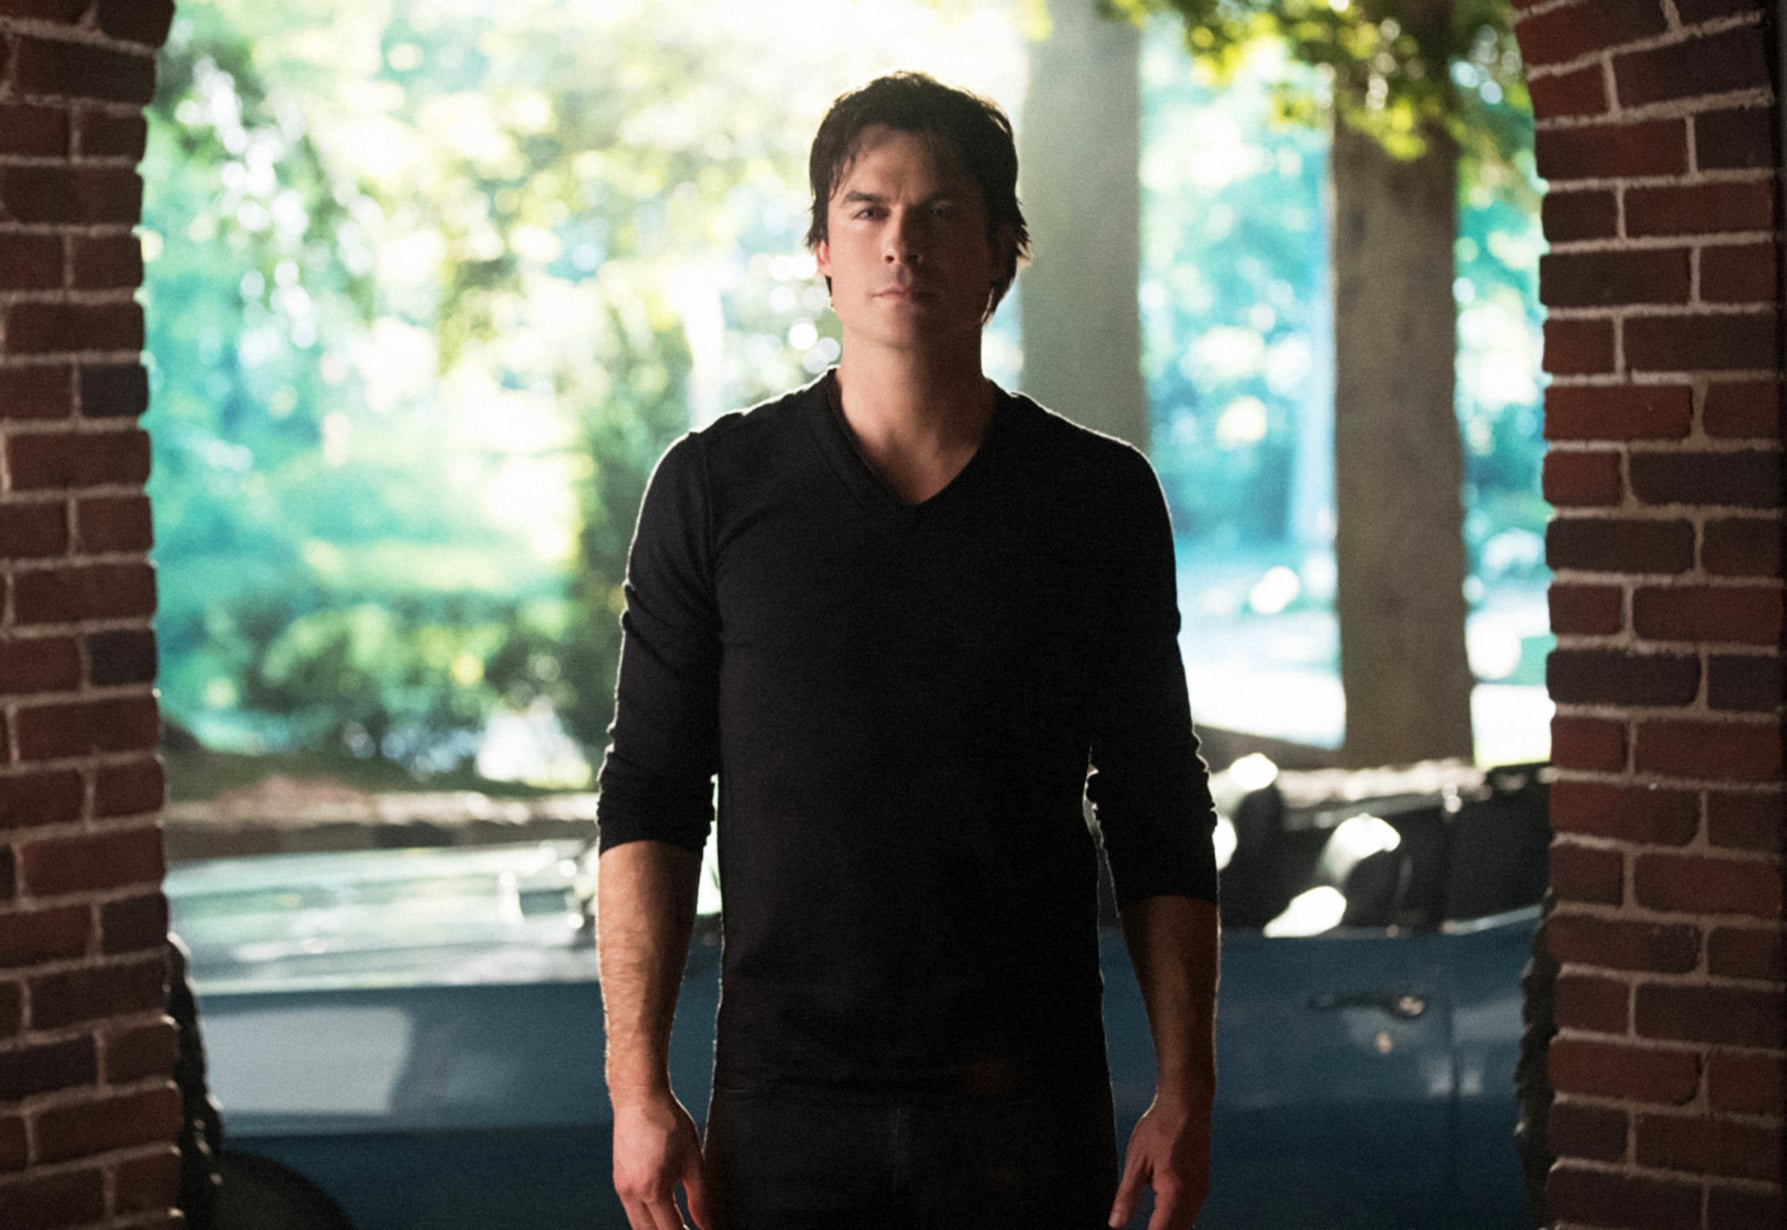 THE VAMPIRE DIARIES, Ian Somerhalder, 'I Was Feeling Epic', (Season 8, ep. 816, aired March 10, 2017). photo: Bob Mahoney / The CW / Courtesy: Everett Collection